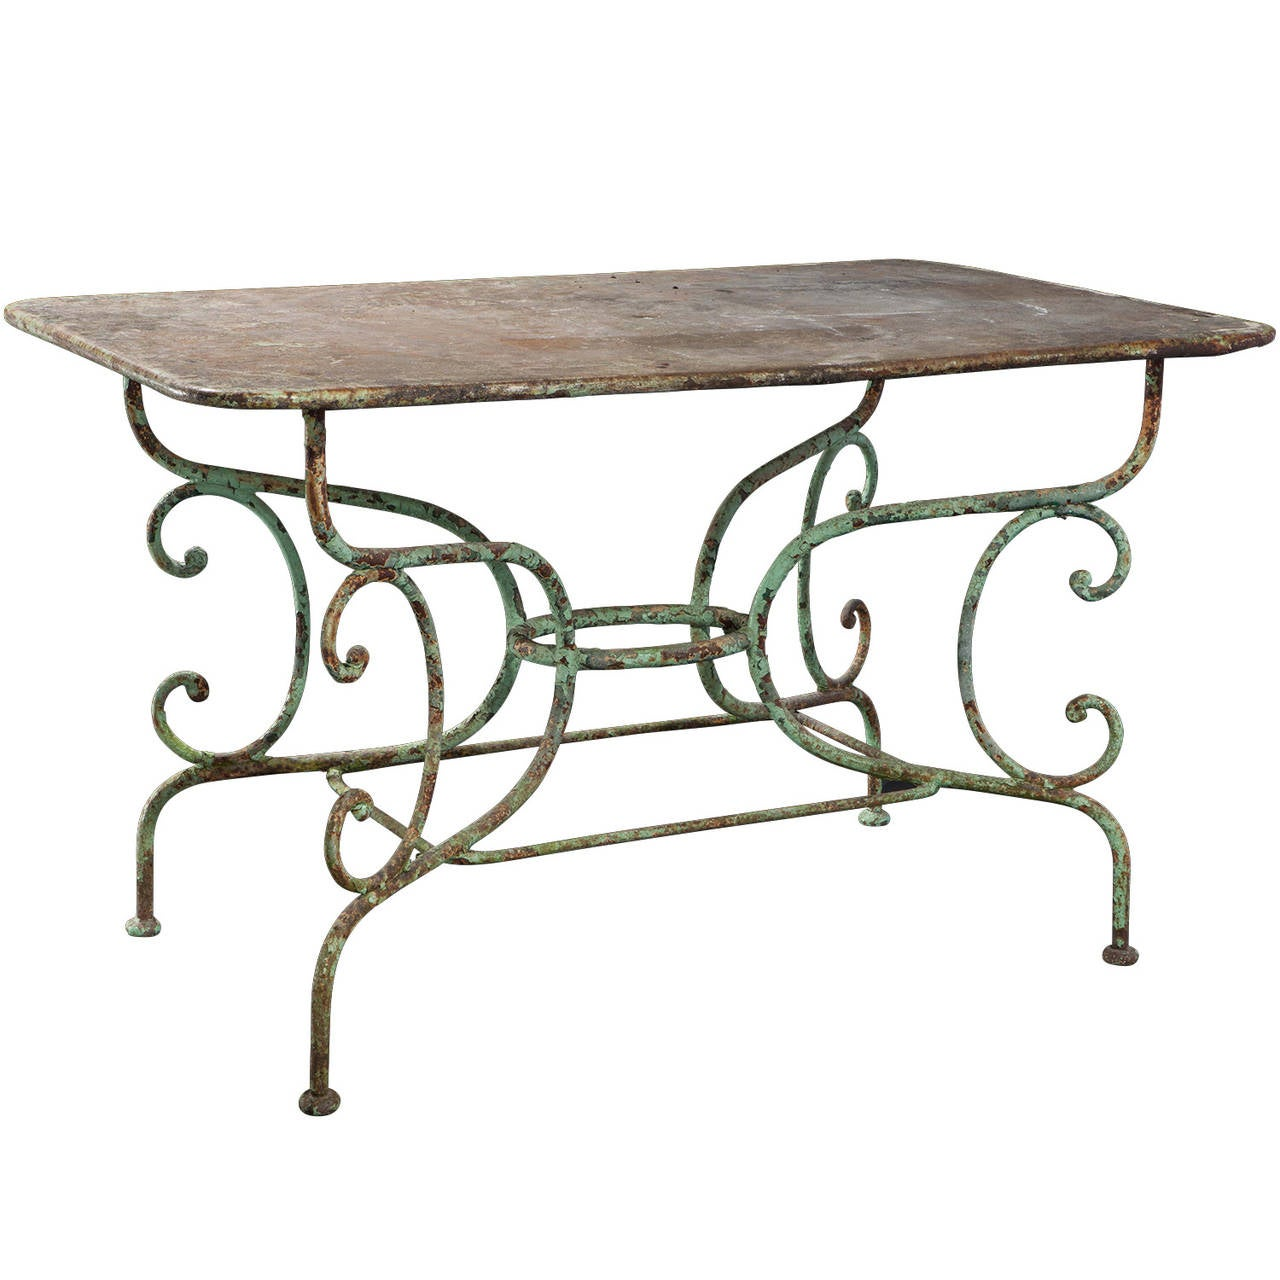 Cast iron garden table at 1stdibs for Cast iron end table